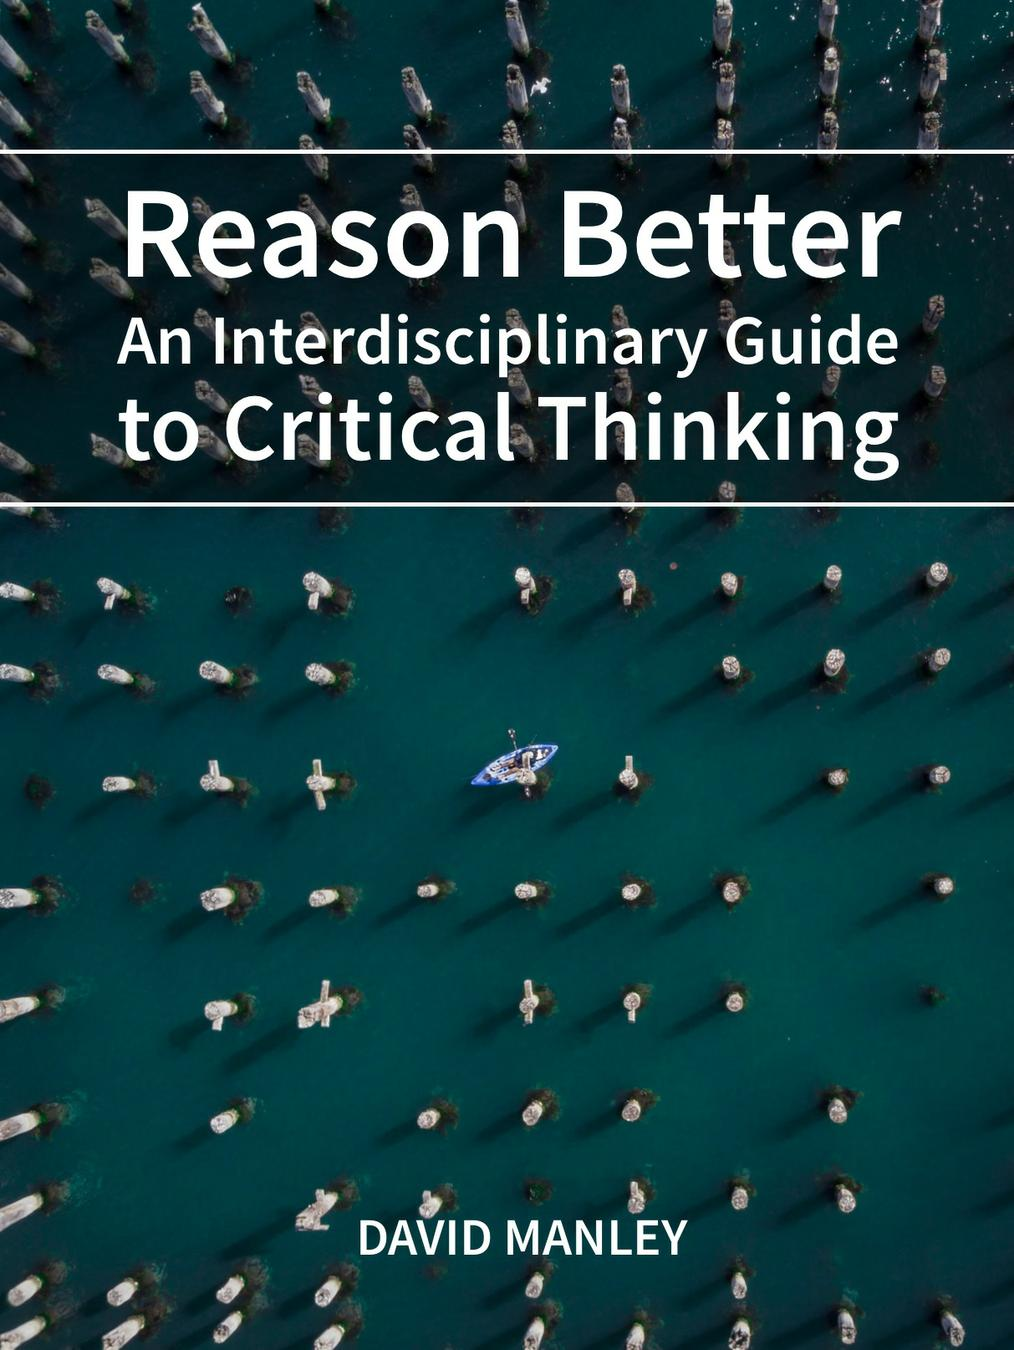 Reason Better: An Interdisciplinary Guide to Critical Thinking